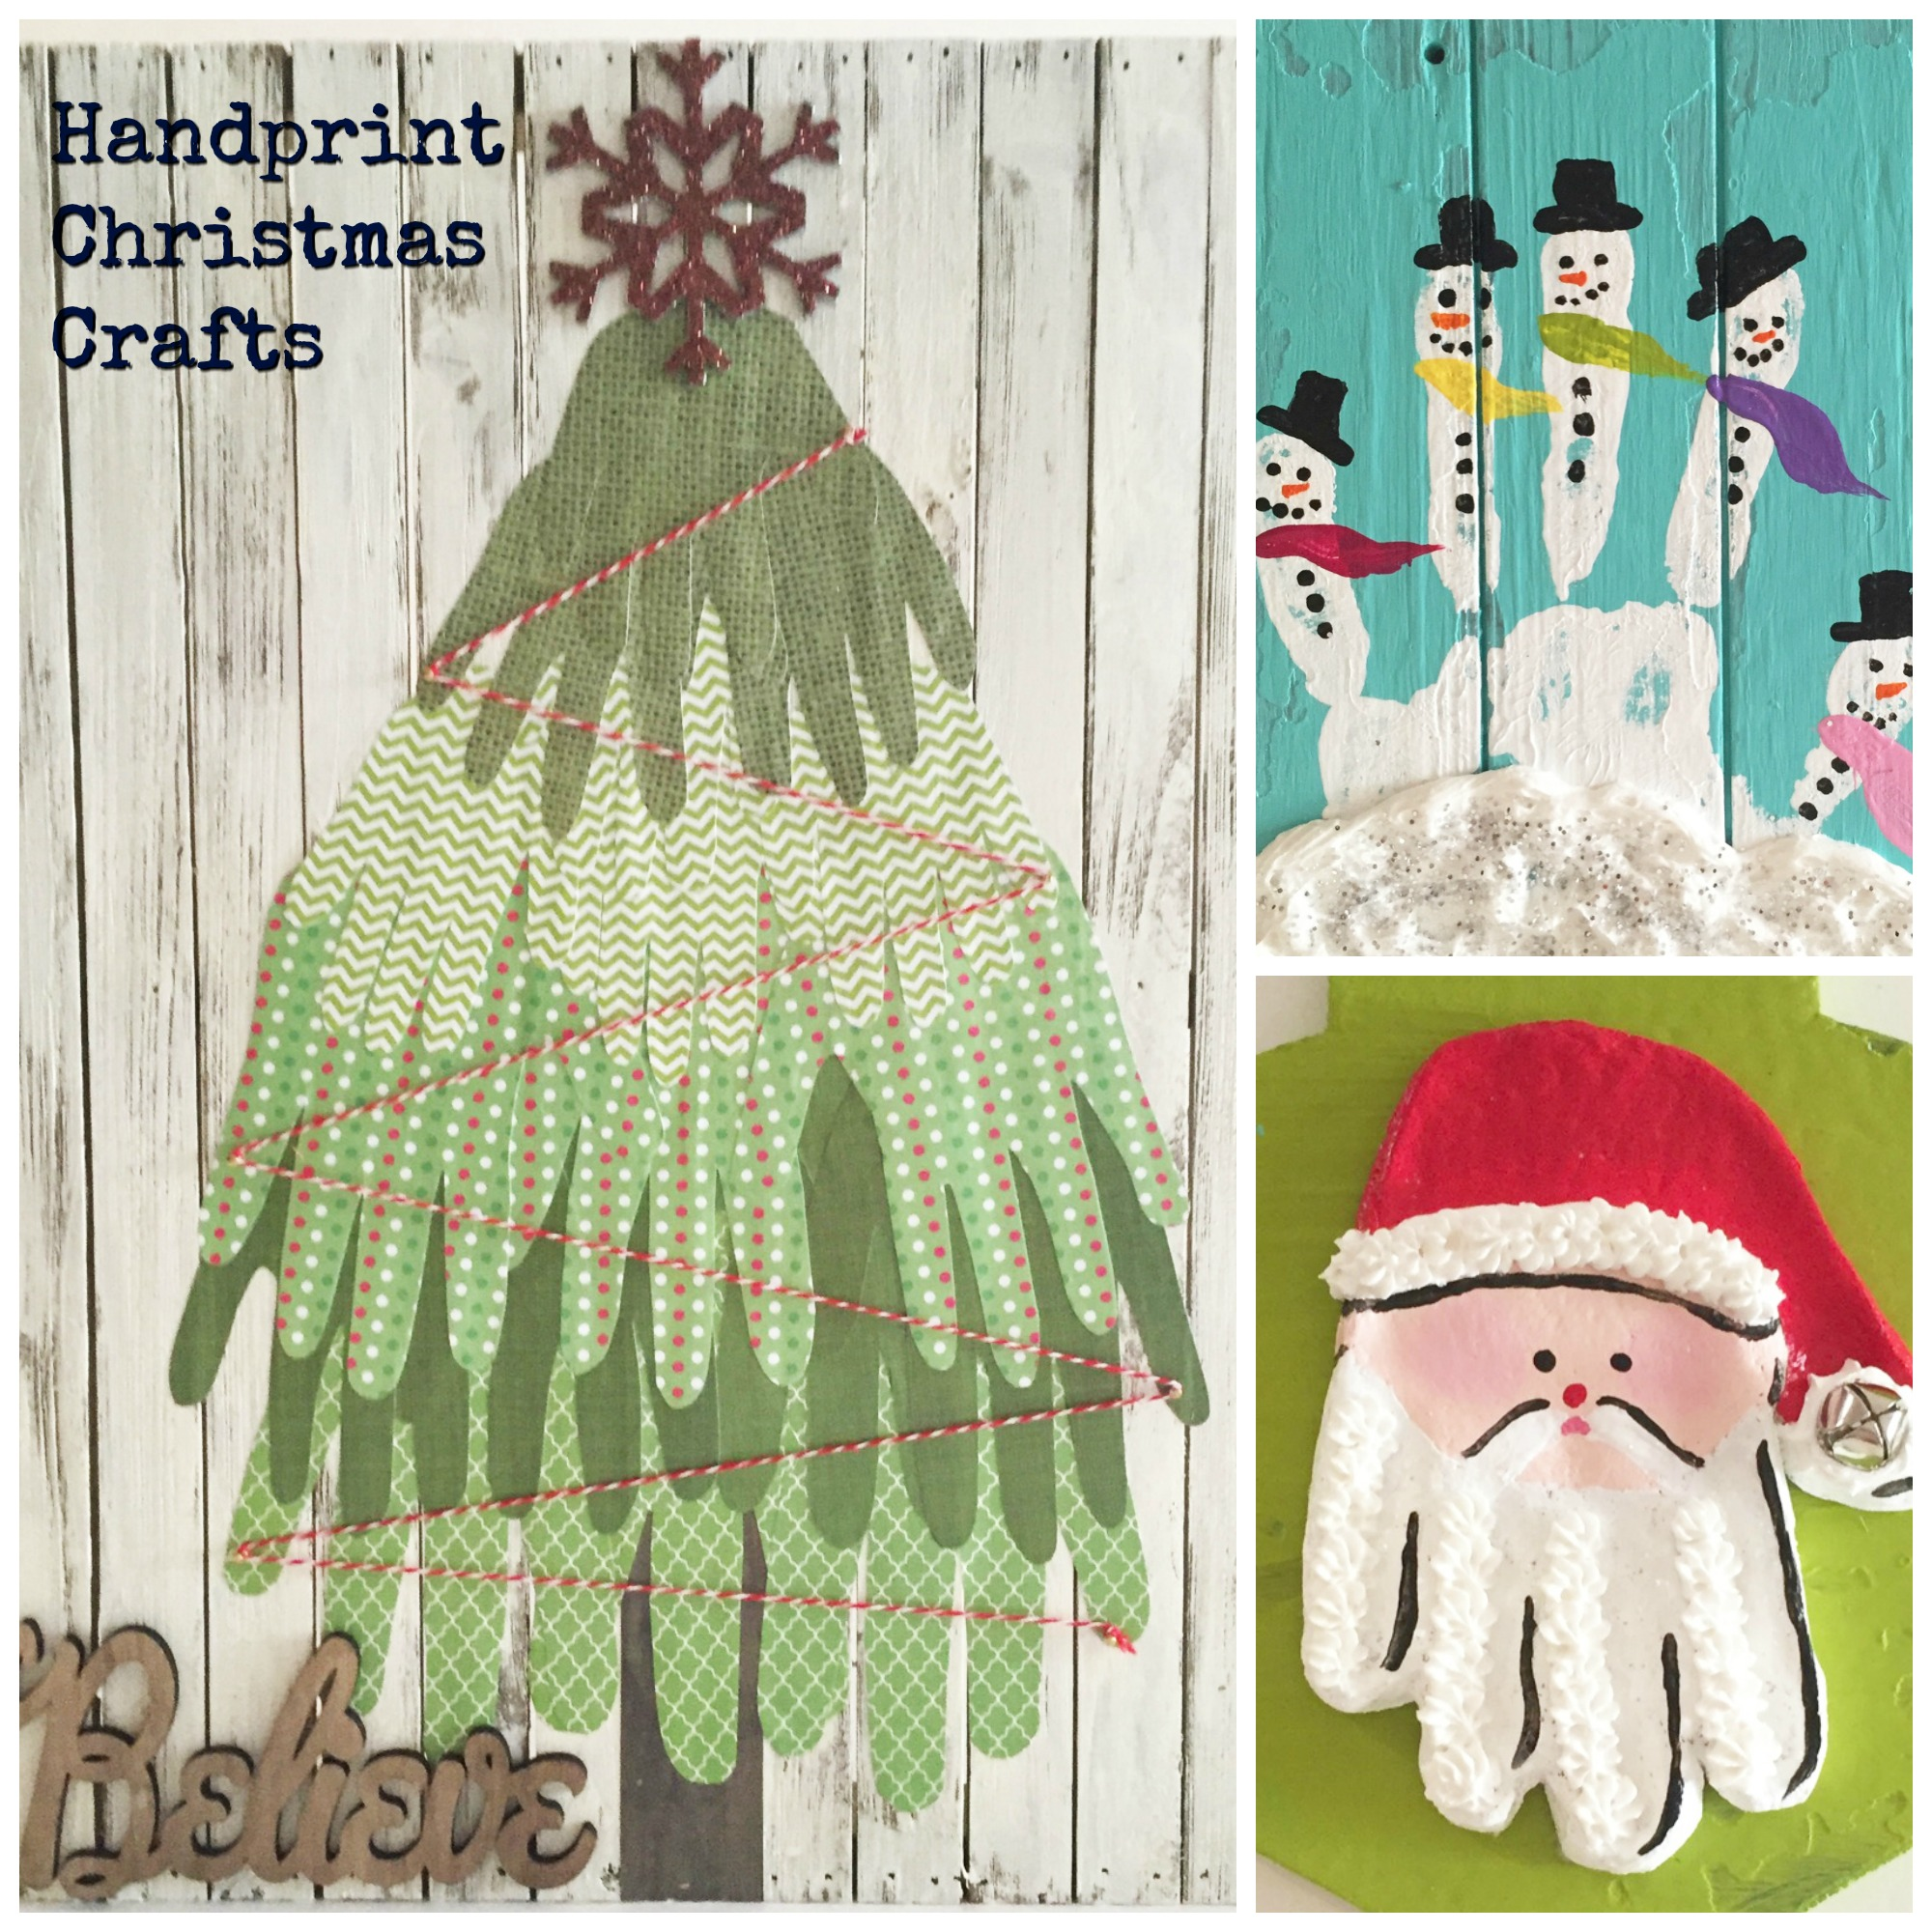 3-handprint-christmas-crafts